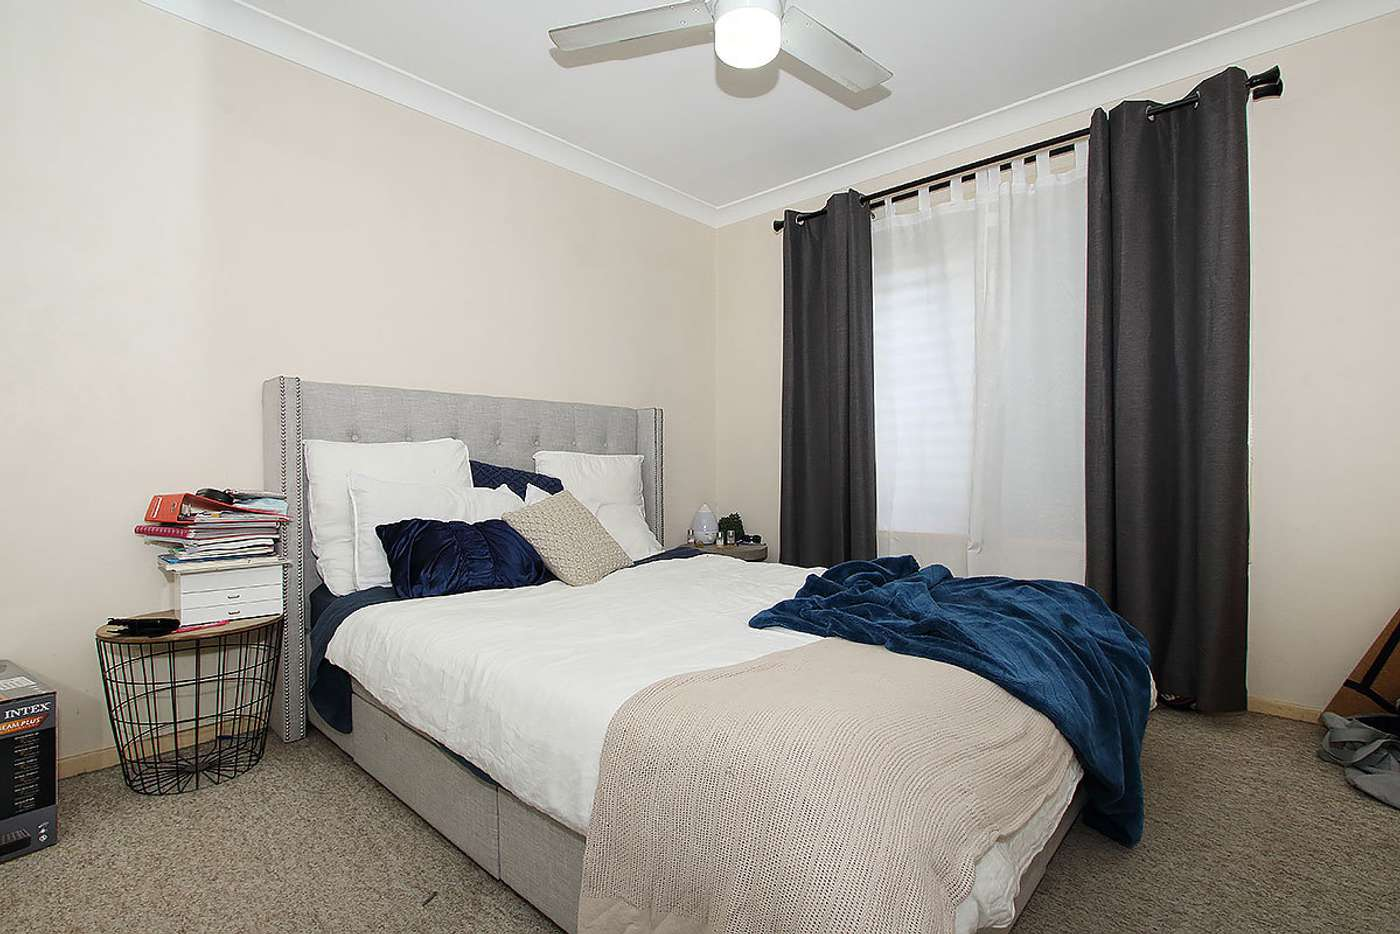 Sixth view of Homely house listing, 11 Colonial Ct, Raceview QLD 4305